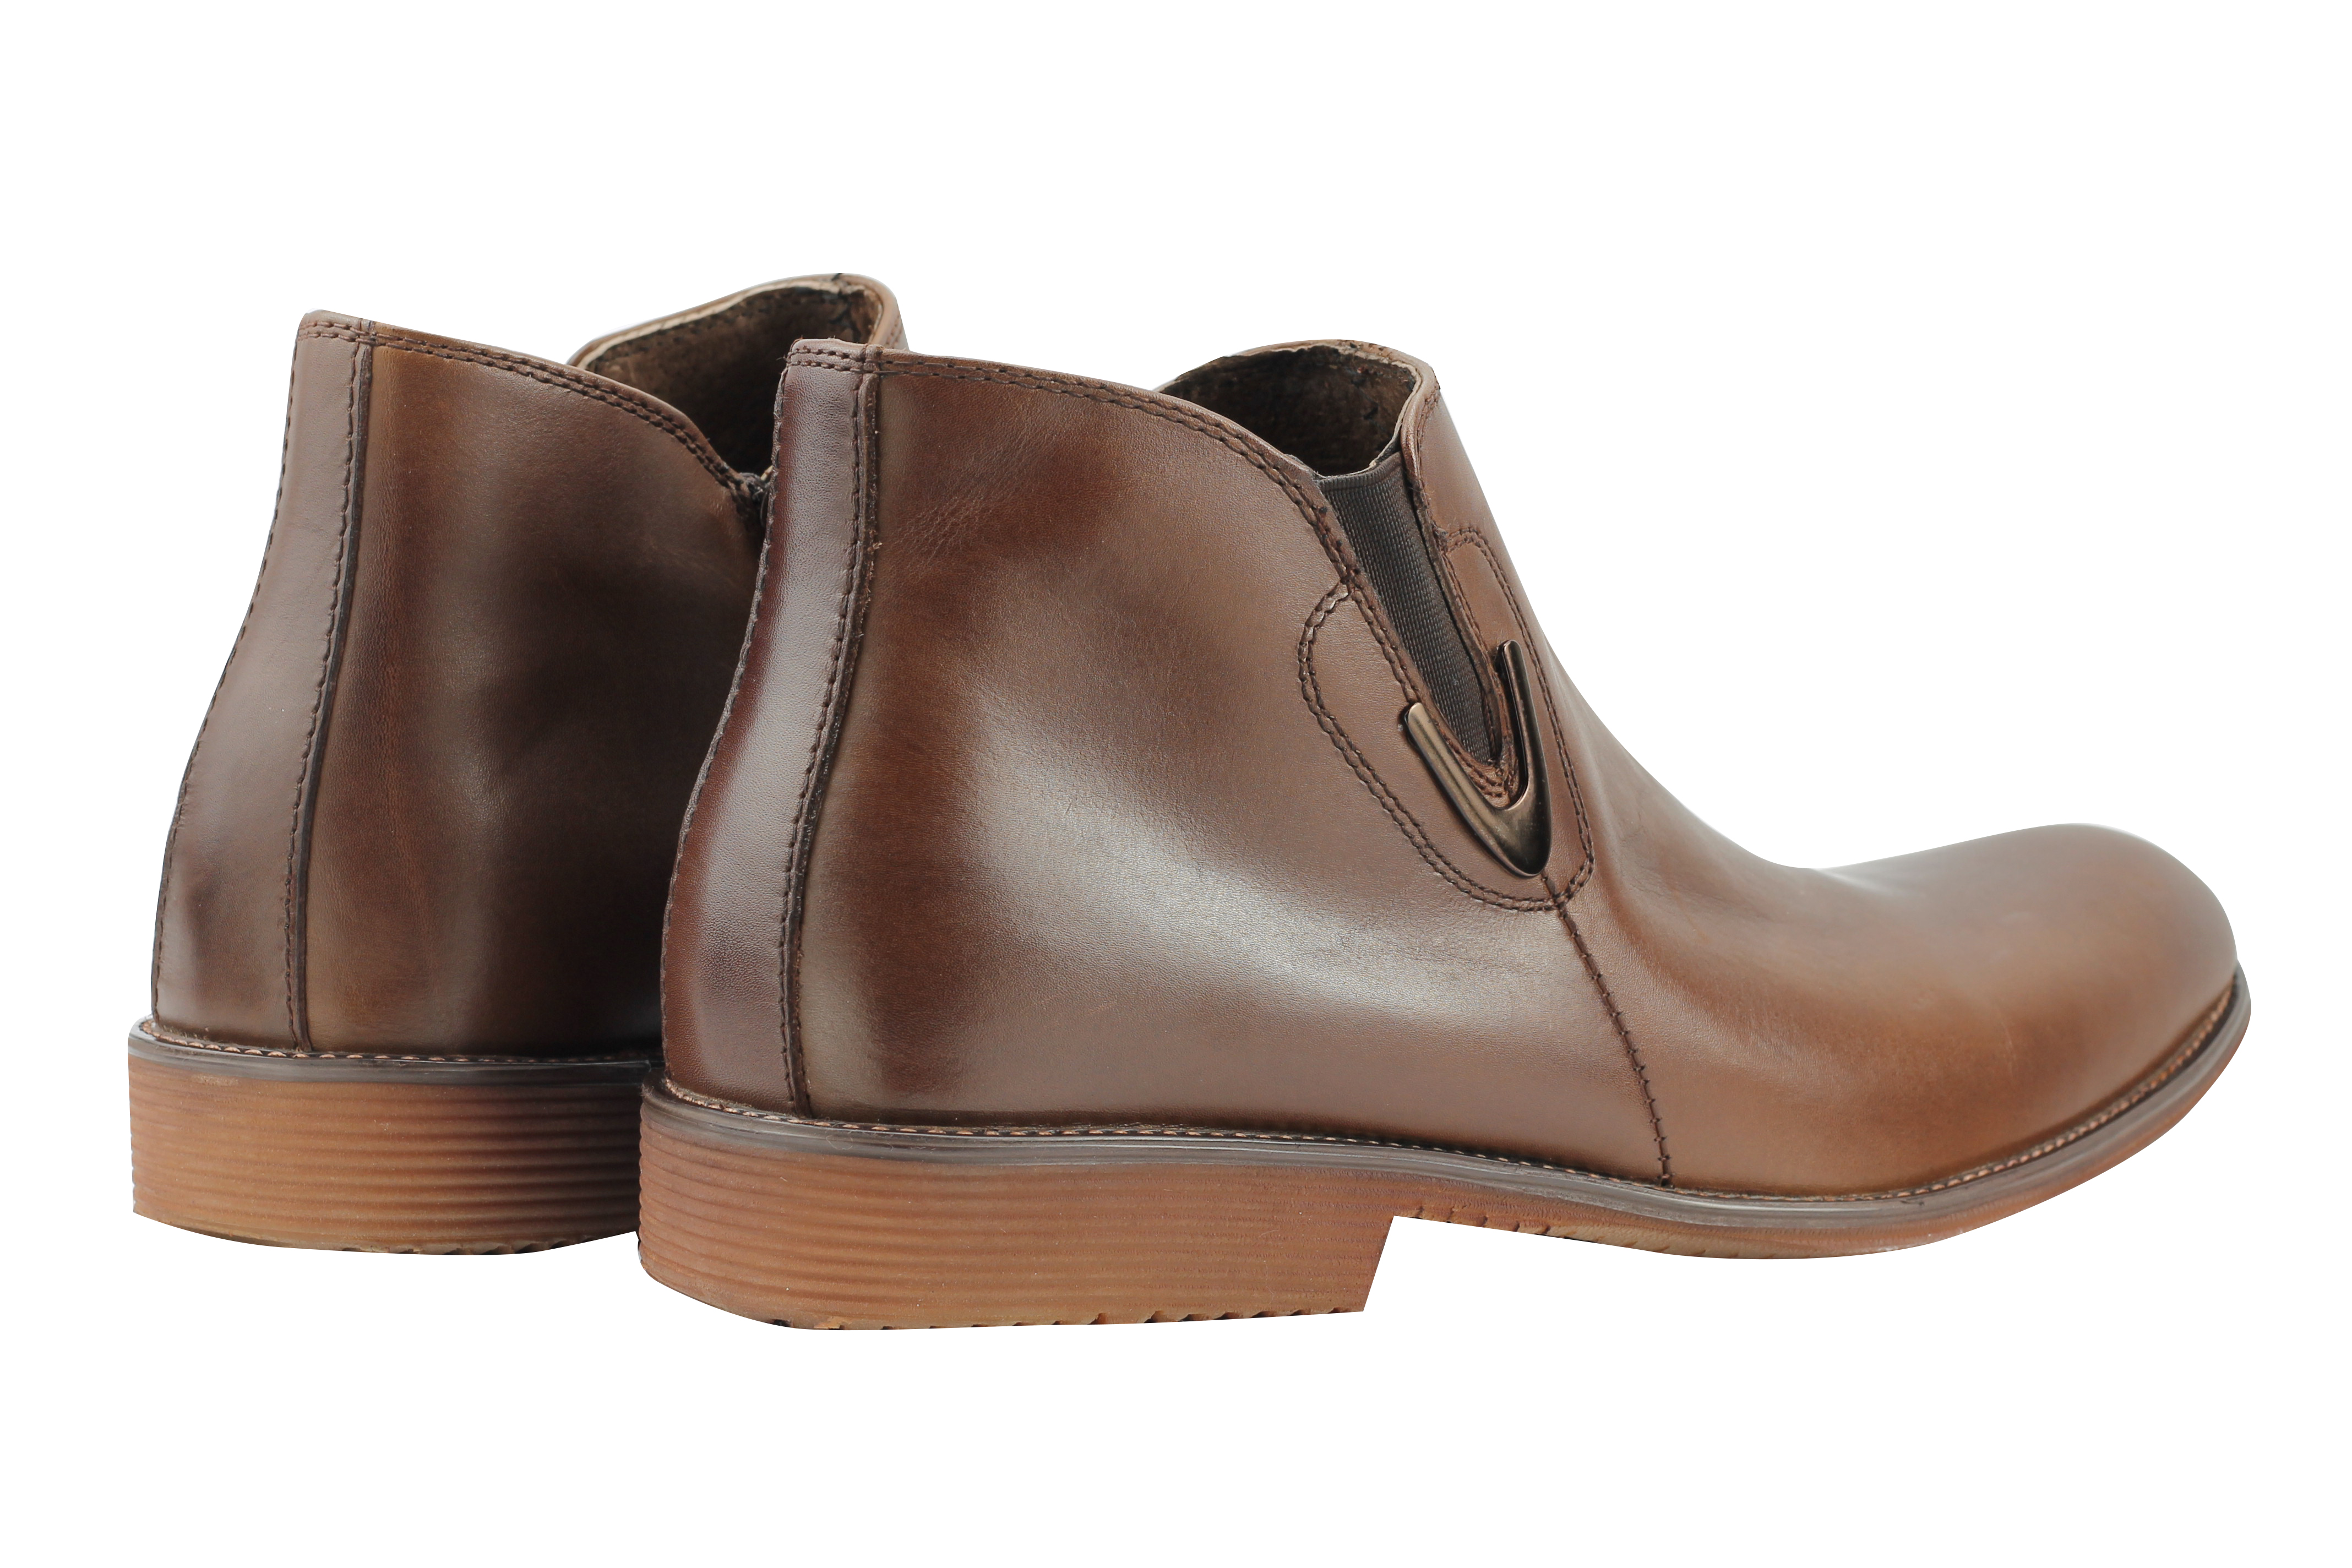 7bbe66ea3871 New Mens Real Leather Vintage Chelsea Boots Classic Zip Ankle Shoes ...